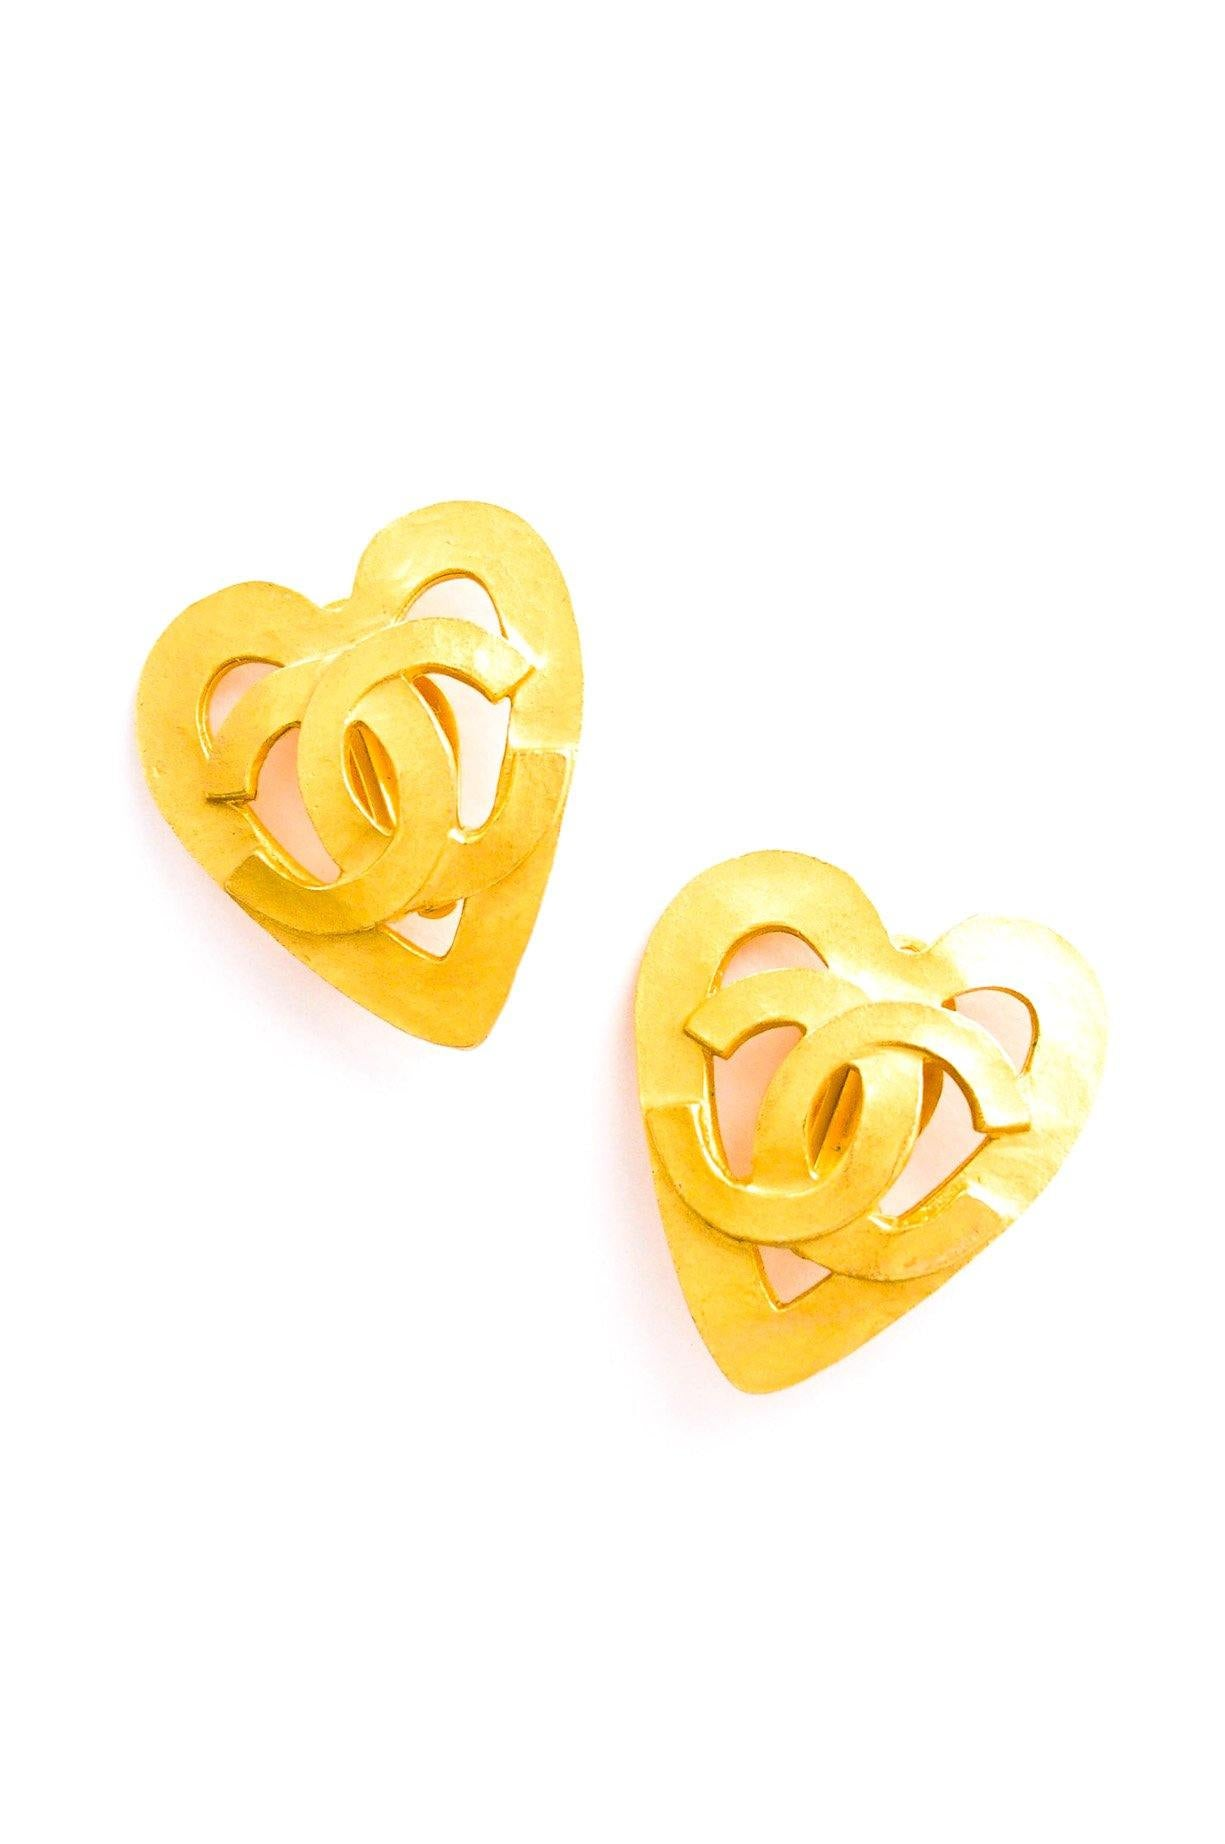 Chanel Statement Heart Clip-on Earrings